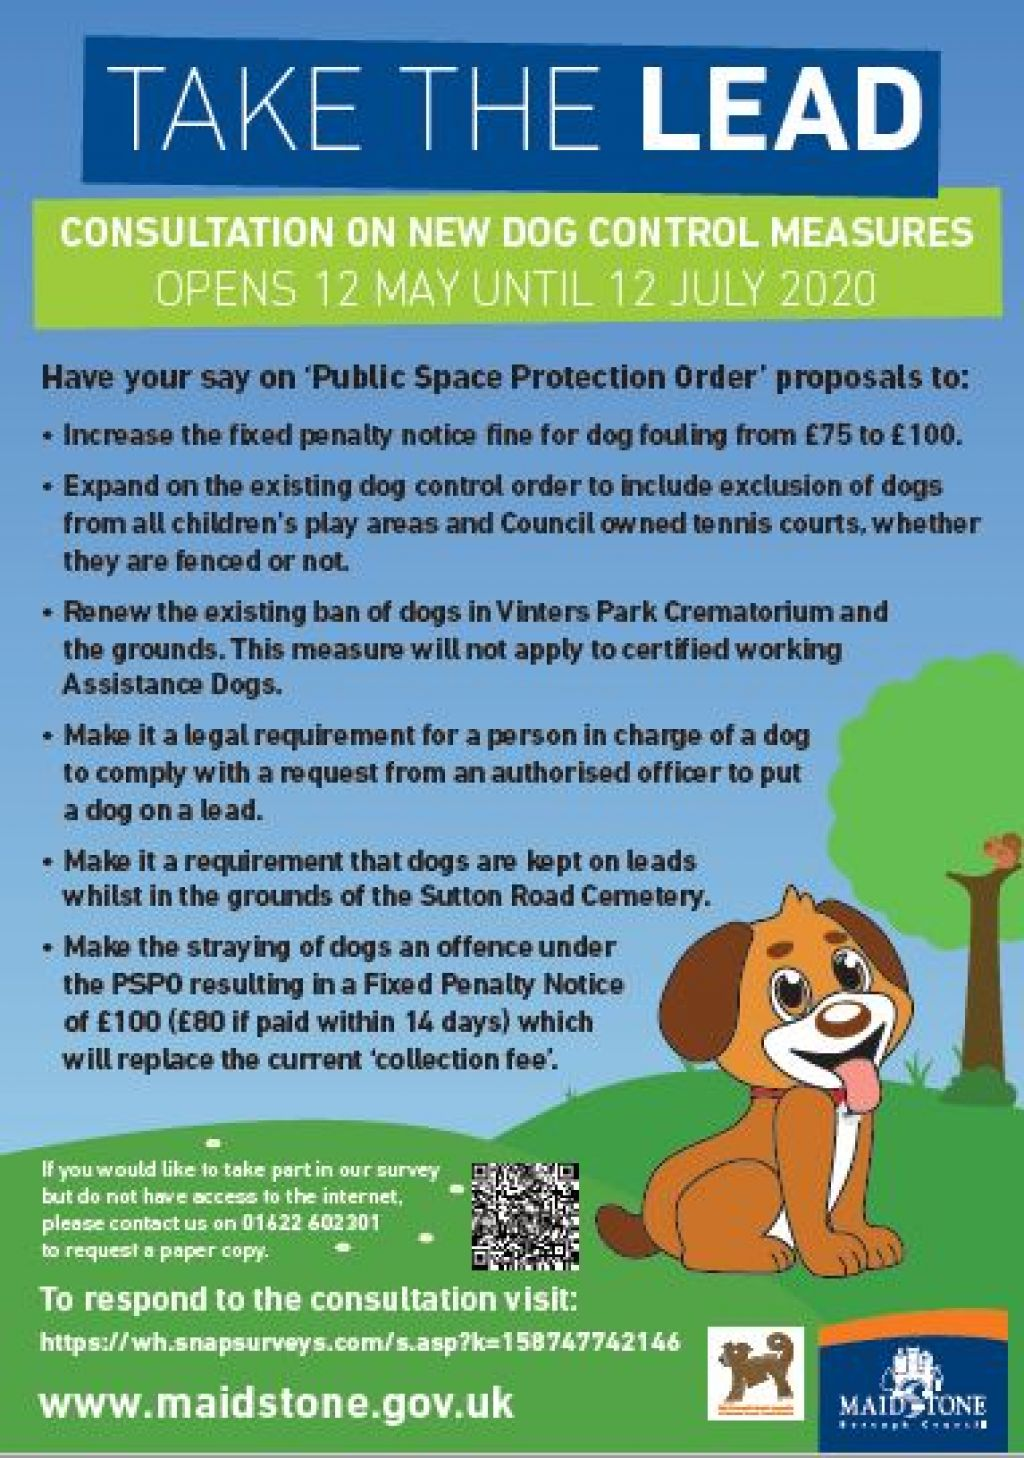 Have your say on new dog control measures image